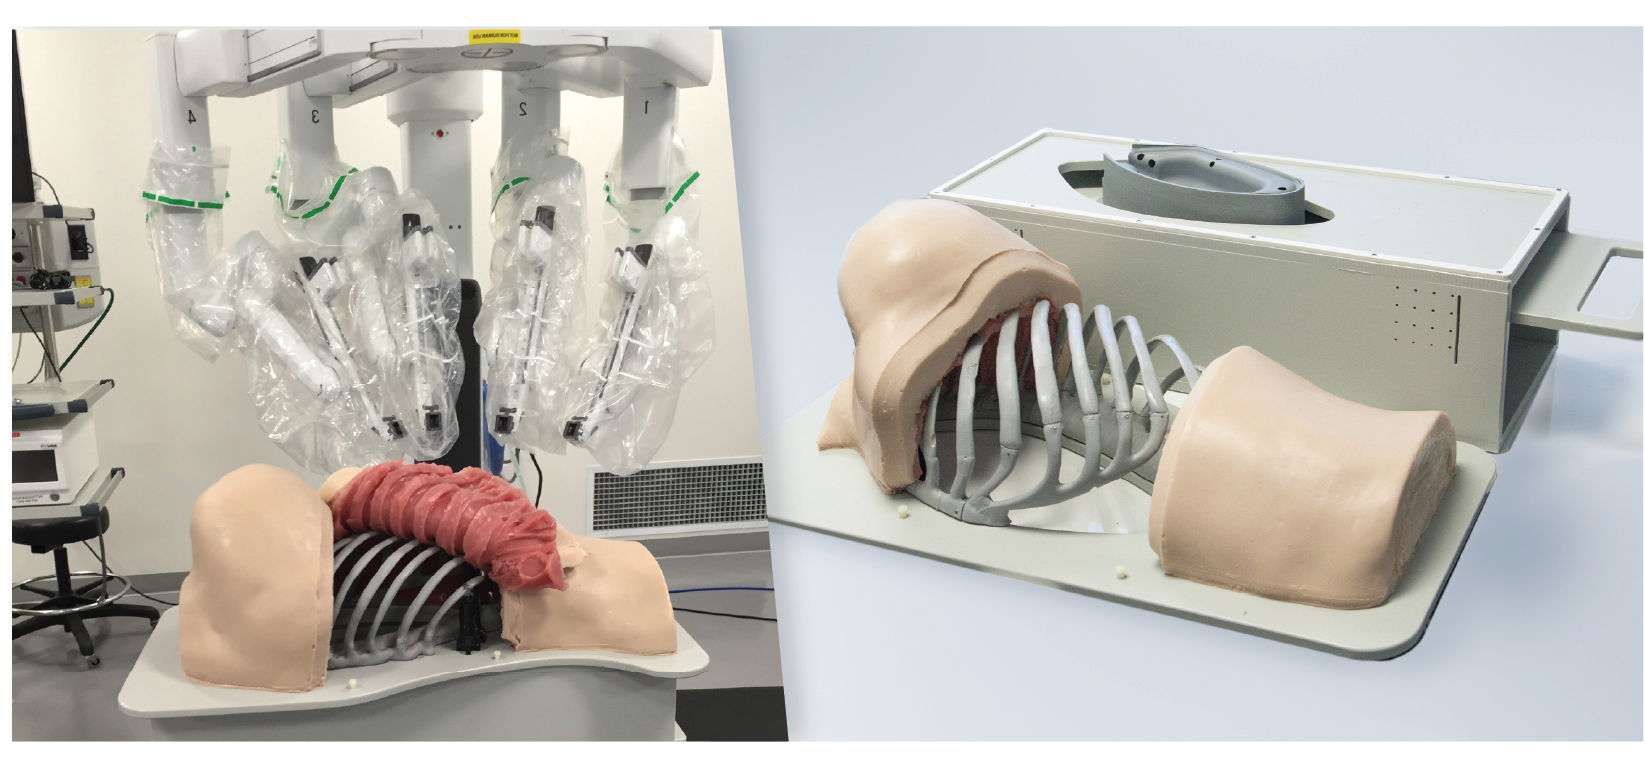 Thoracic Surgery Simulator